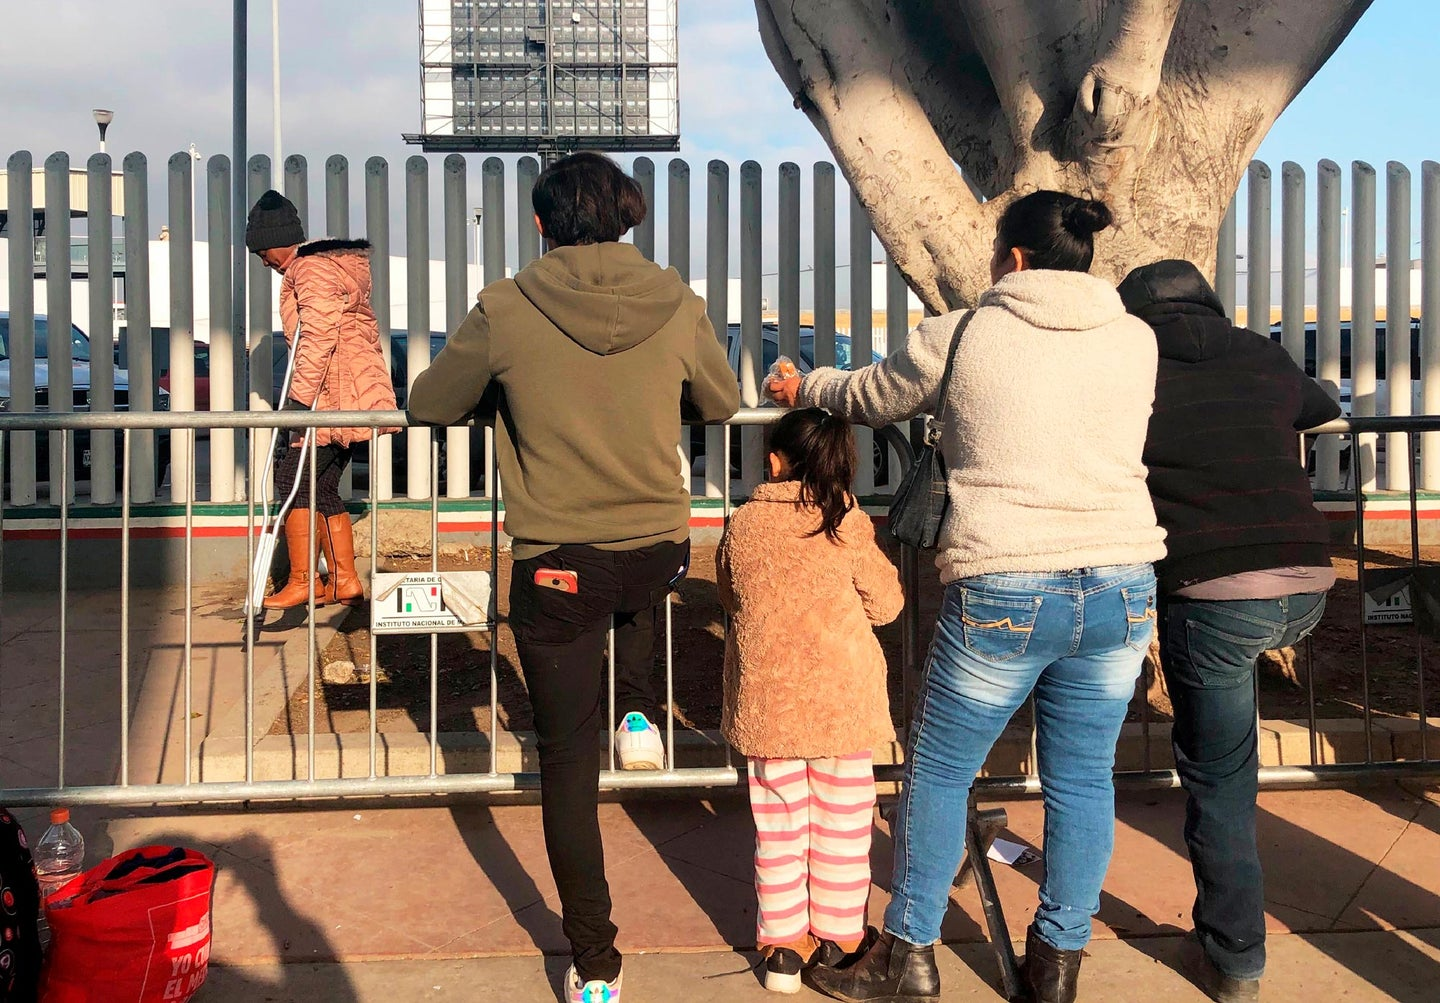 people leaning on metal fence